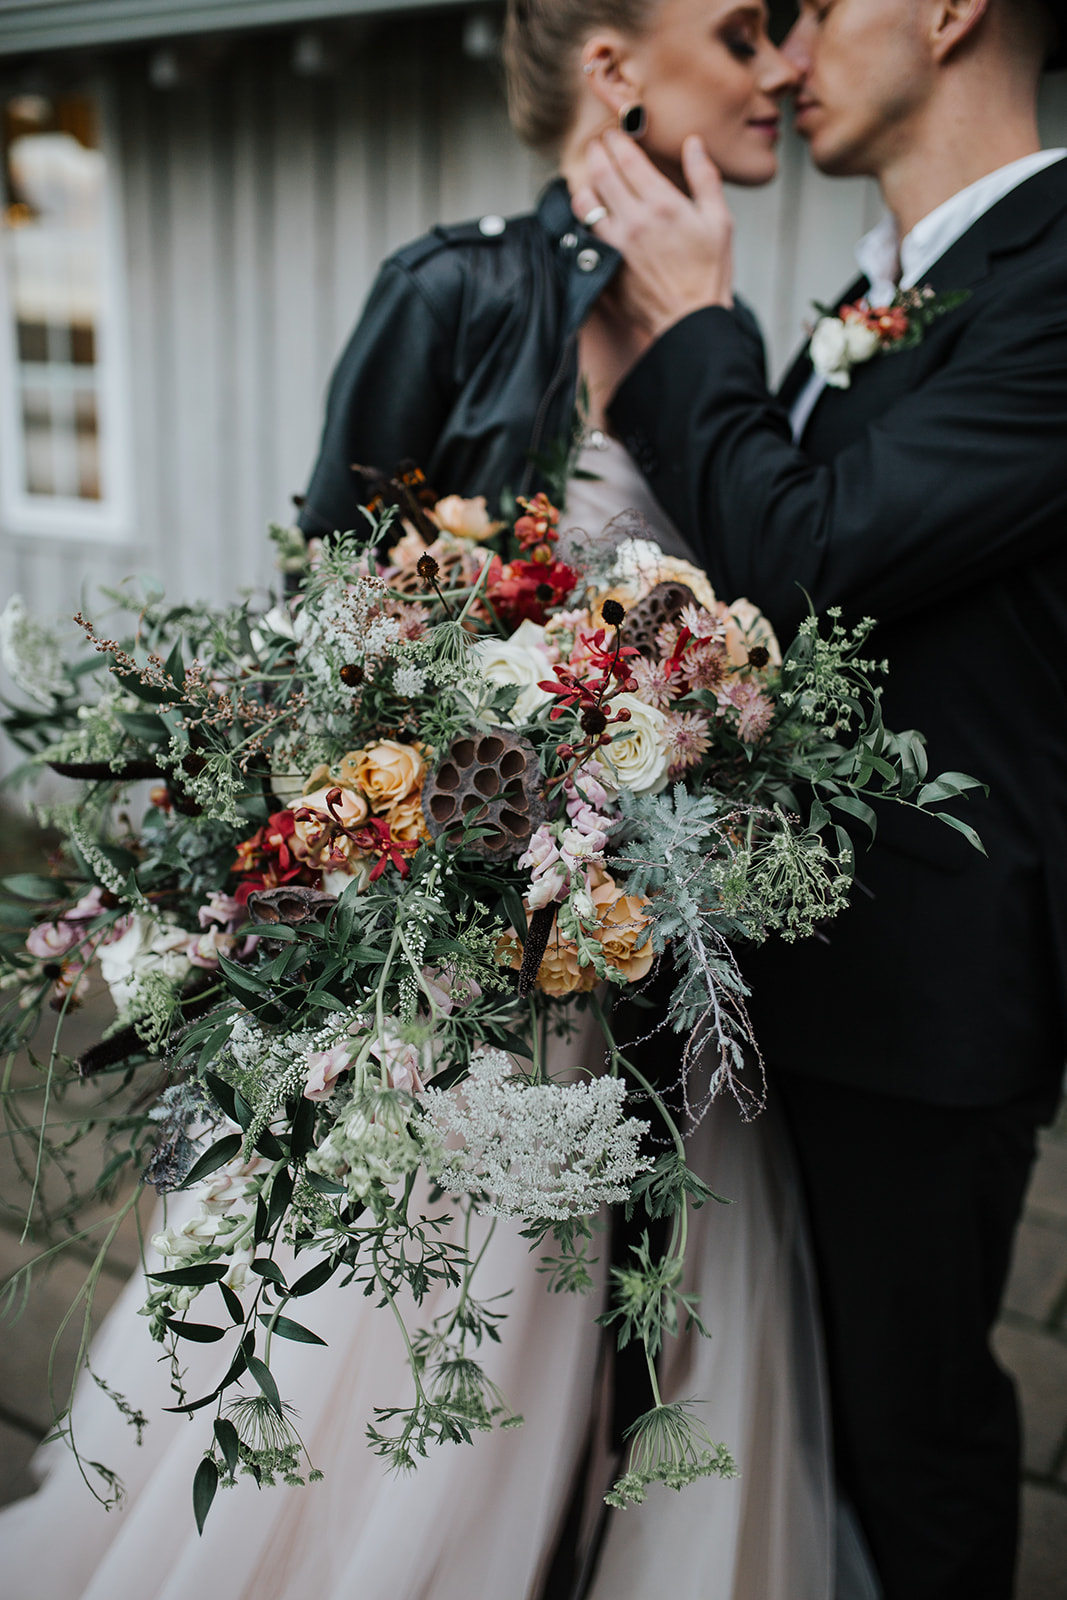 Tell us all about it: - To get started shoot us an email at badrabbitflowers@gmail.com with a little info about your big day!-What are your favorite floral styles and sizes?-What are your wedding colors and/or the colors you are looking for in flowers?-Are there any flowers you really just don't like or are allergic to?-How many arrangements, structures, bouquets, wearables, etc. will you need for your ceremony, reception and wedding party?-Do you have a specific budget in mind?-What is your venue and what type of venue is it (tent, barn, home, backyard, beach, hotel, etc.)?-Who is your photographer, if you have gotten that far yet!?-We also love when you send us inspiration photos and pinterest boards to help us really get a sense of your style!